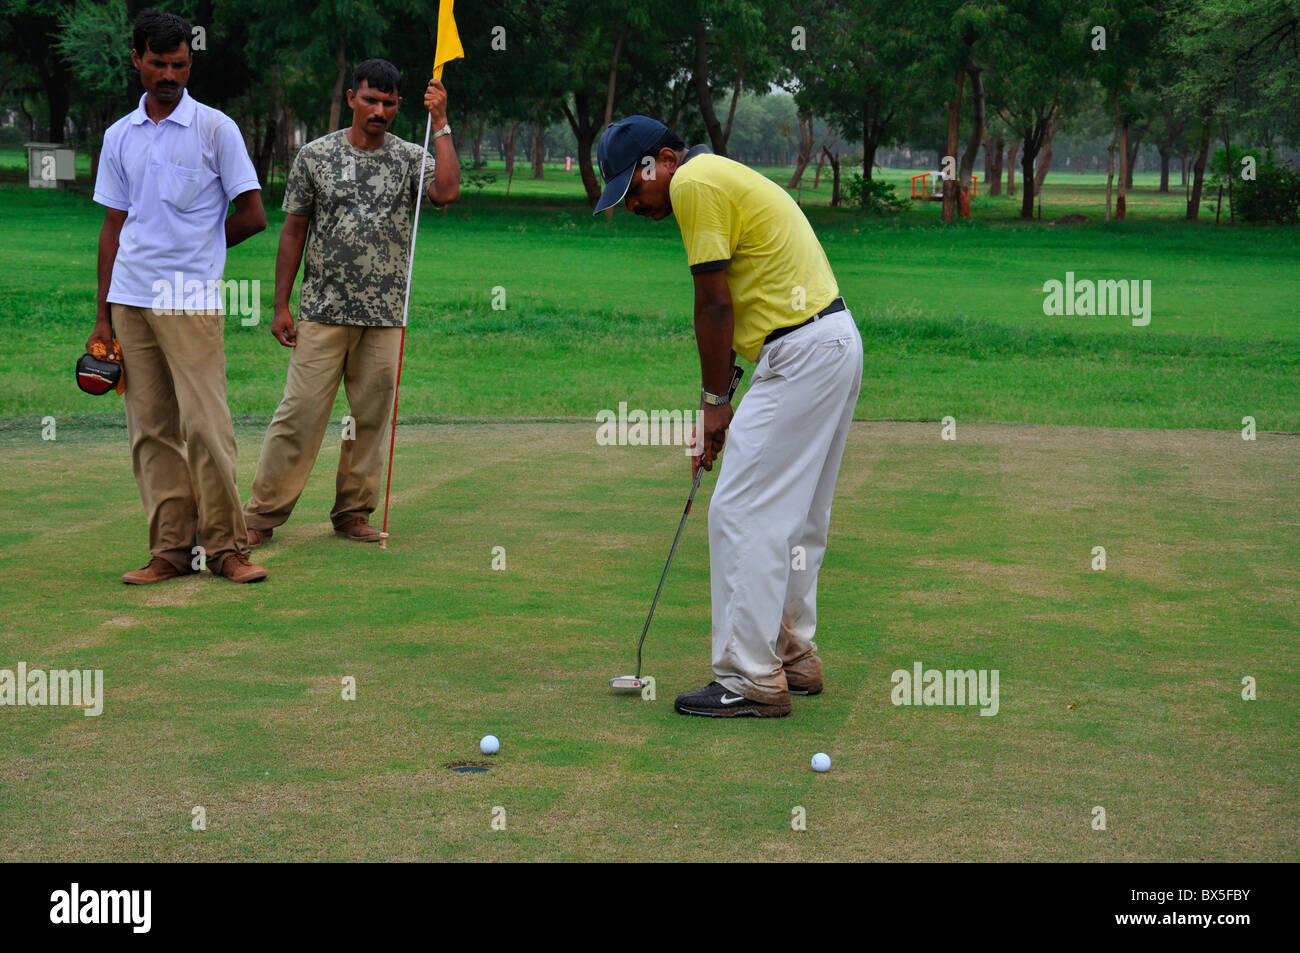 An Indian golfer putting in the green of a golf course - Stock Image